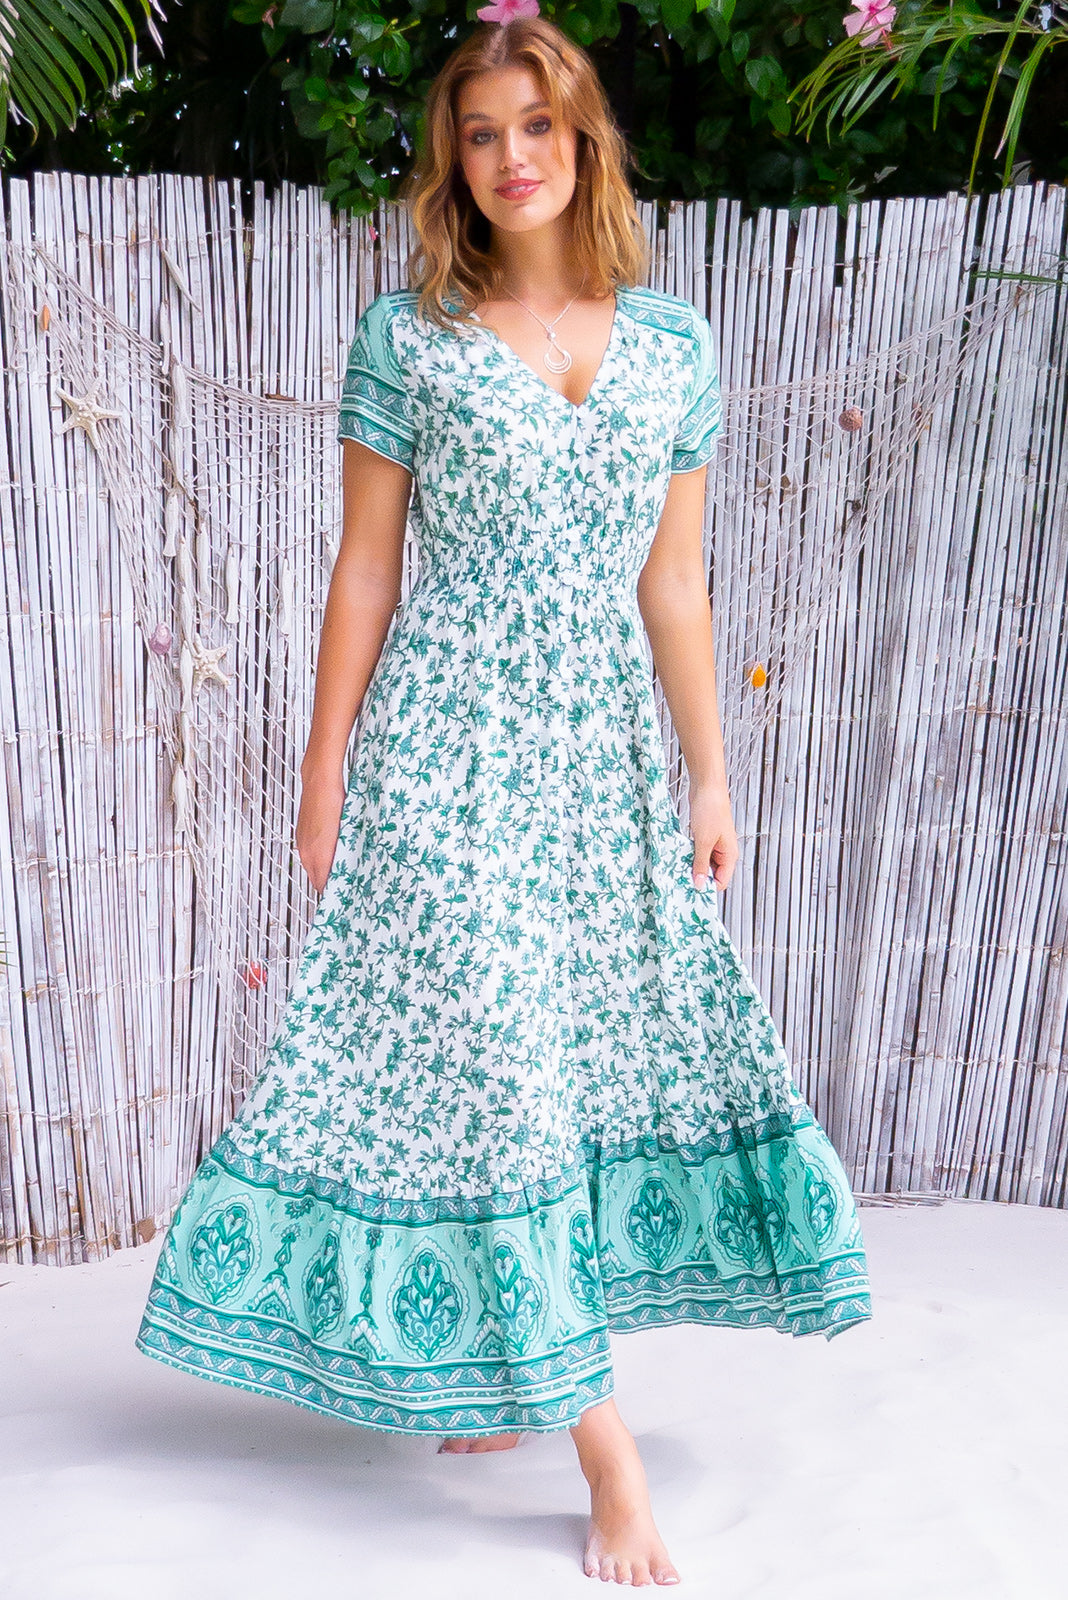 The beautiful boho maxi dress, Twilla Fern Green Maxi Dress has functional button front, cap sleeves, elasticated shirred waist, frill hem with border print, white base with intricate mint and green print in woven 100% rayon.